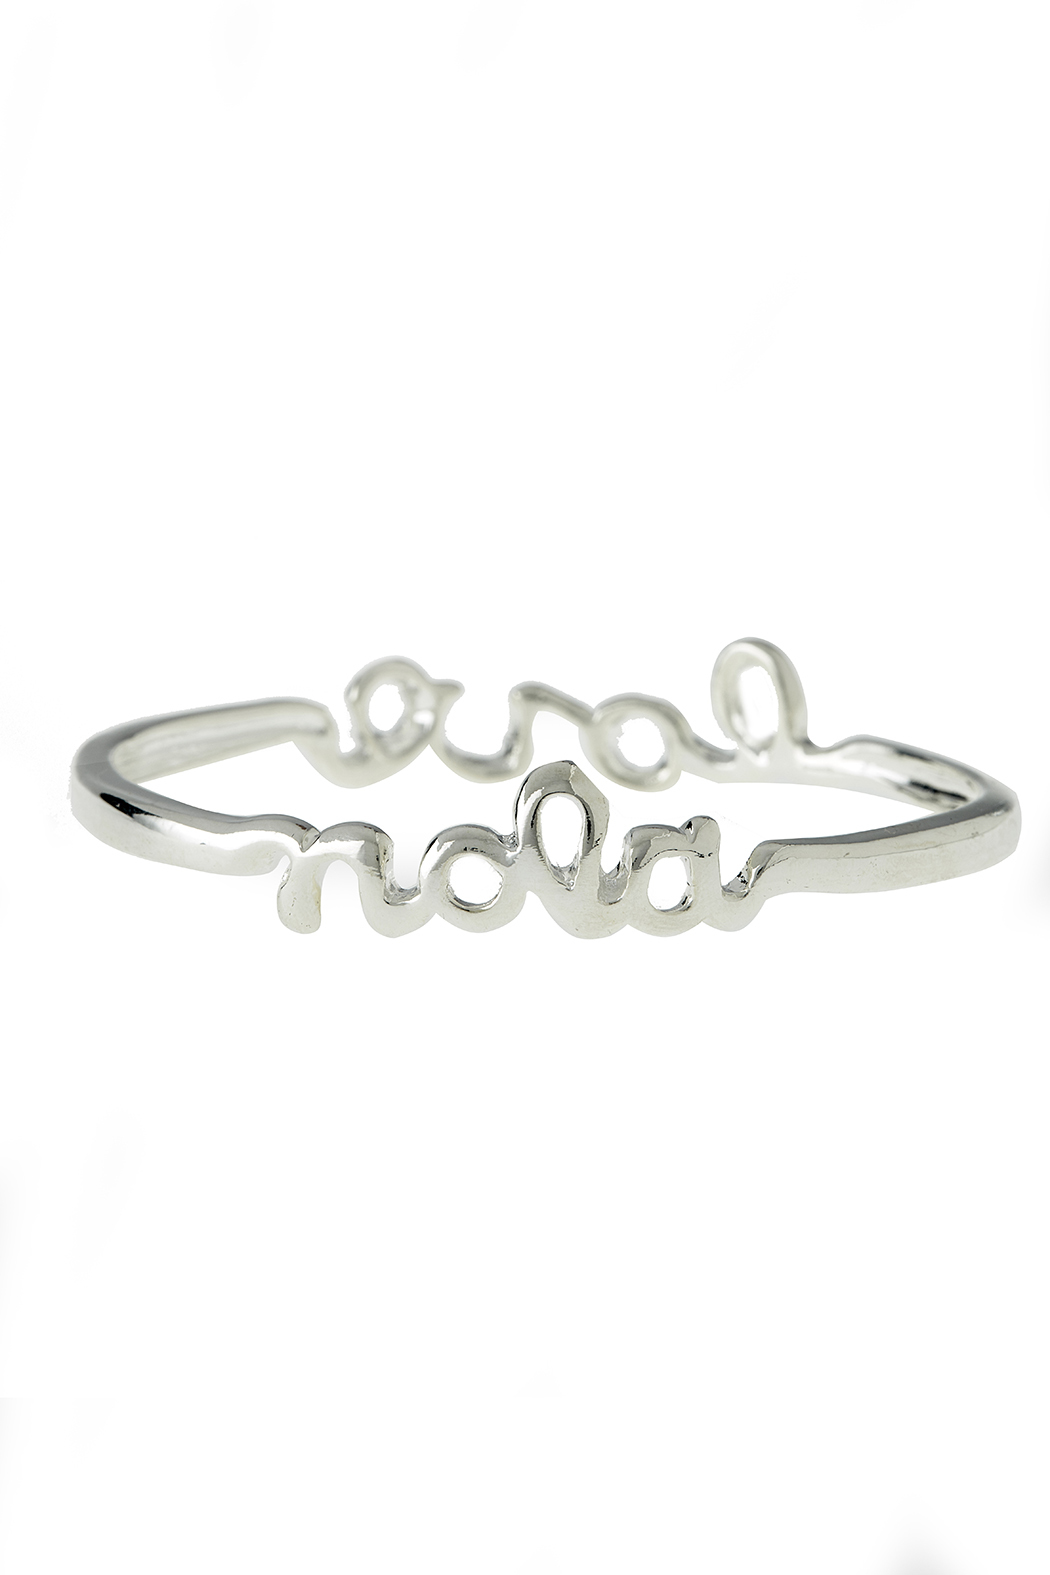 Sarah Ott Silver Nola Love Bangle - Main Image